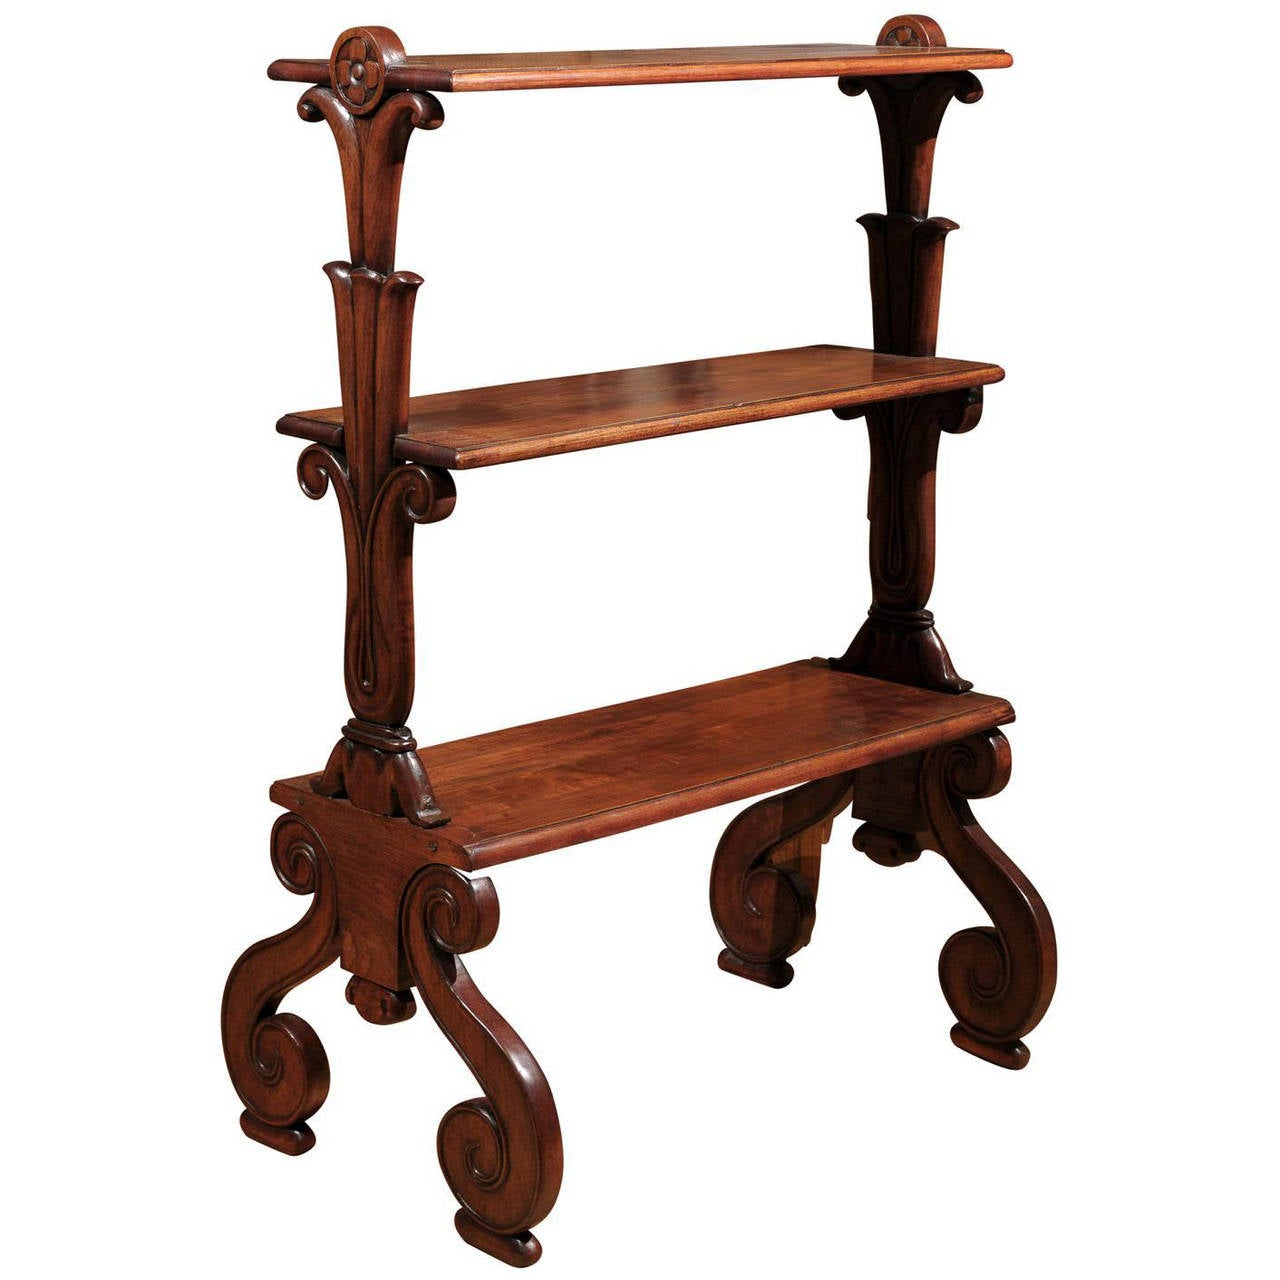 Mahogany Three-Tiered Shelf with Scrolled Legs from the Late 19th Century